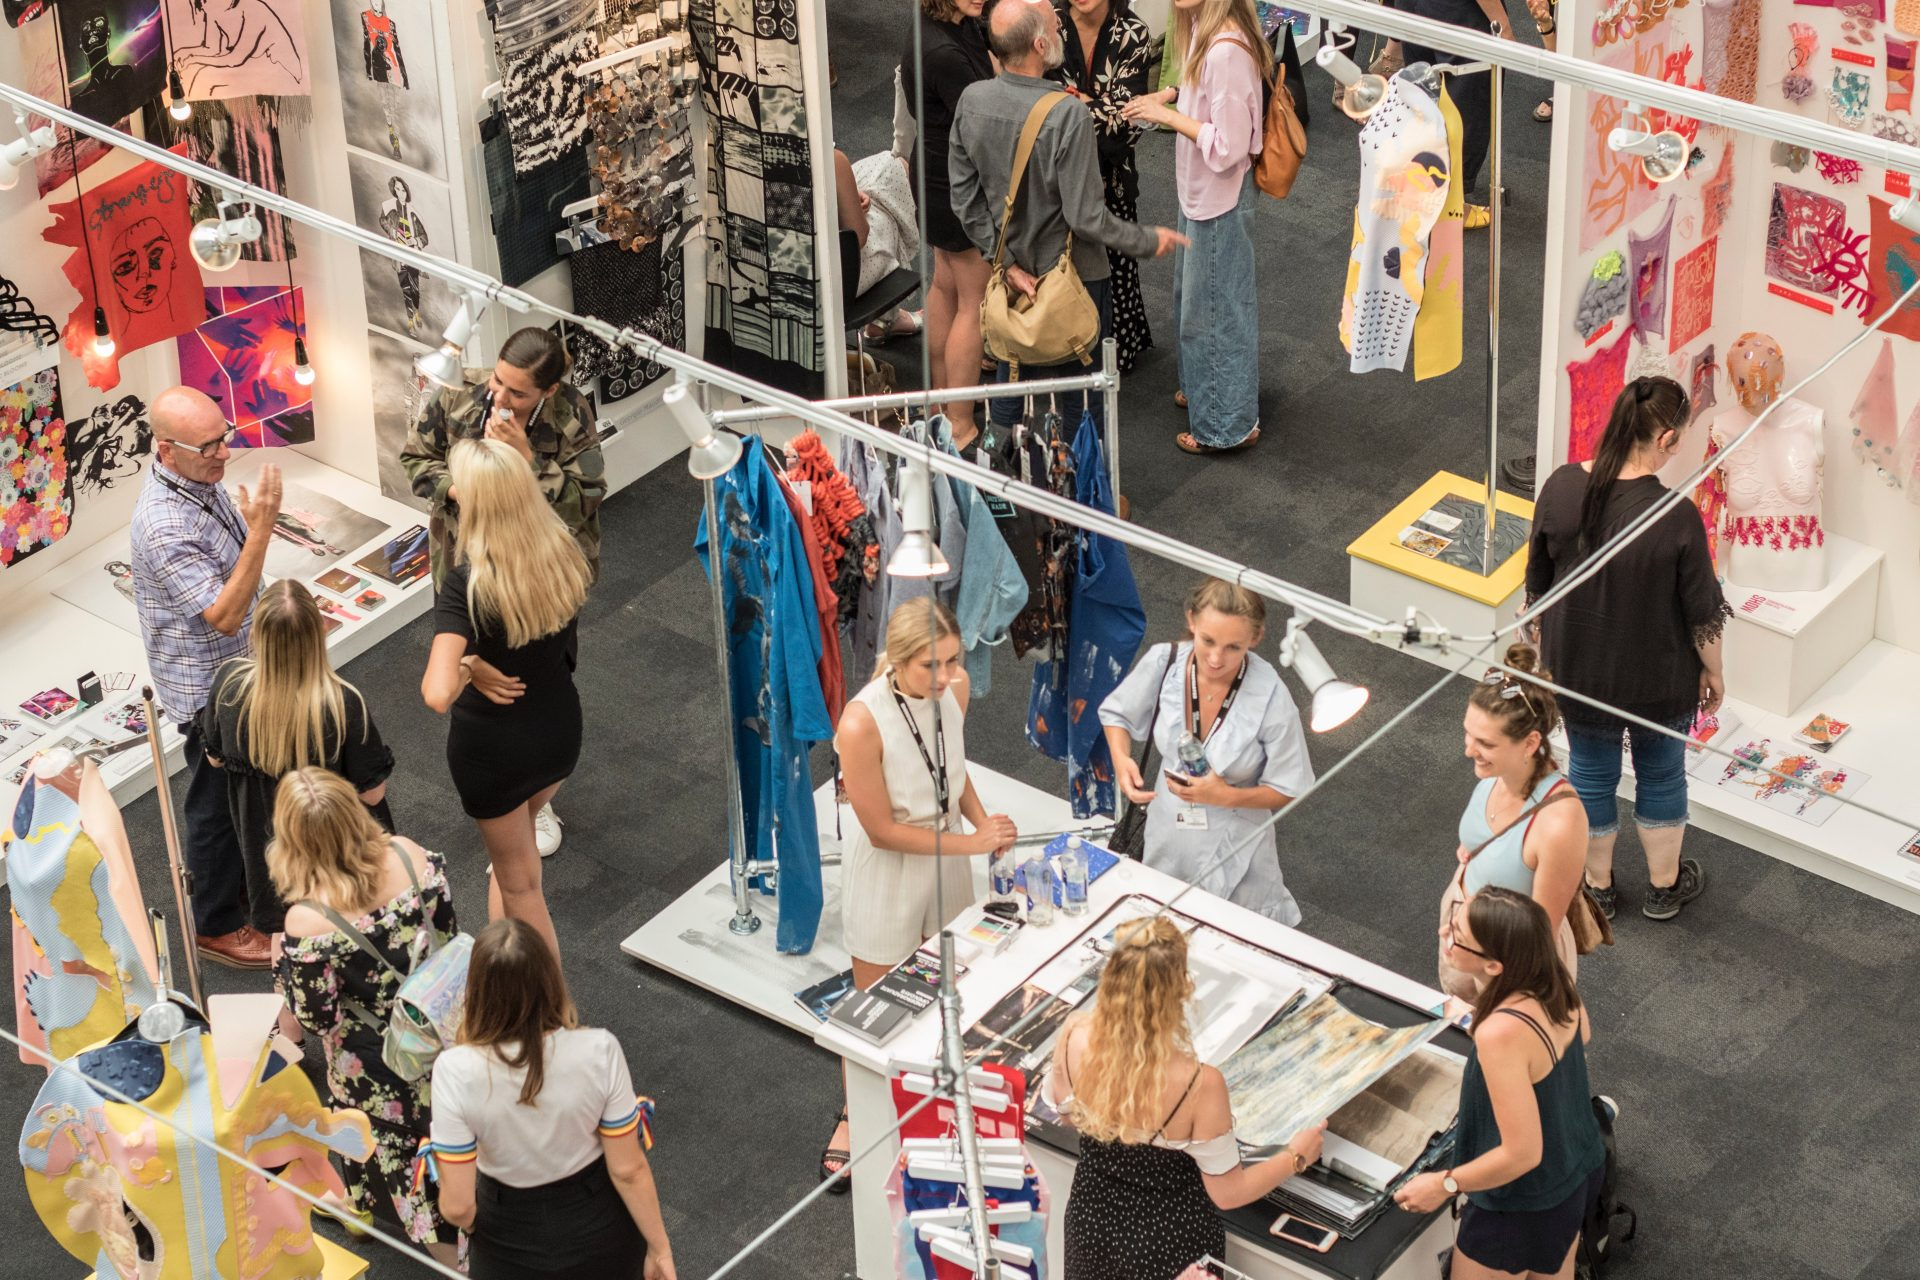 Heading To A Trade Show This Year? Here Are Some Tips To Make It A Success